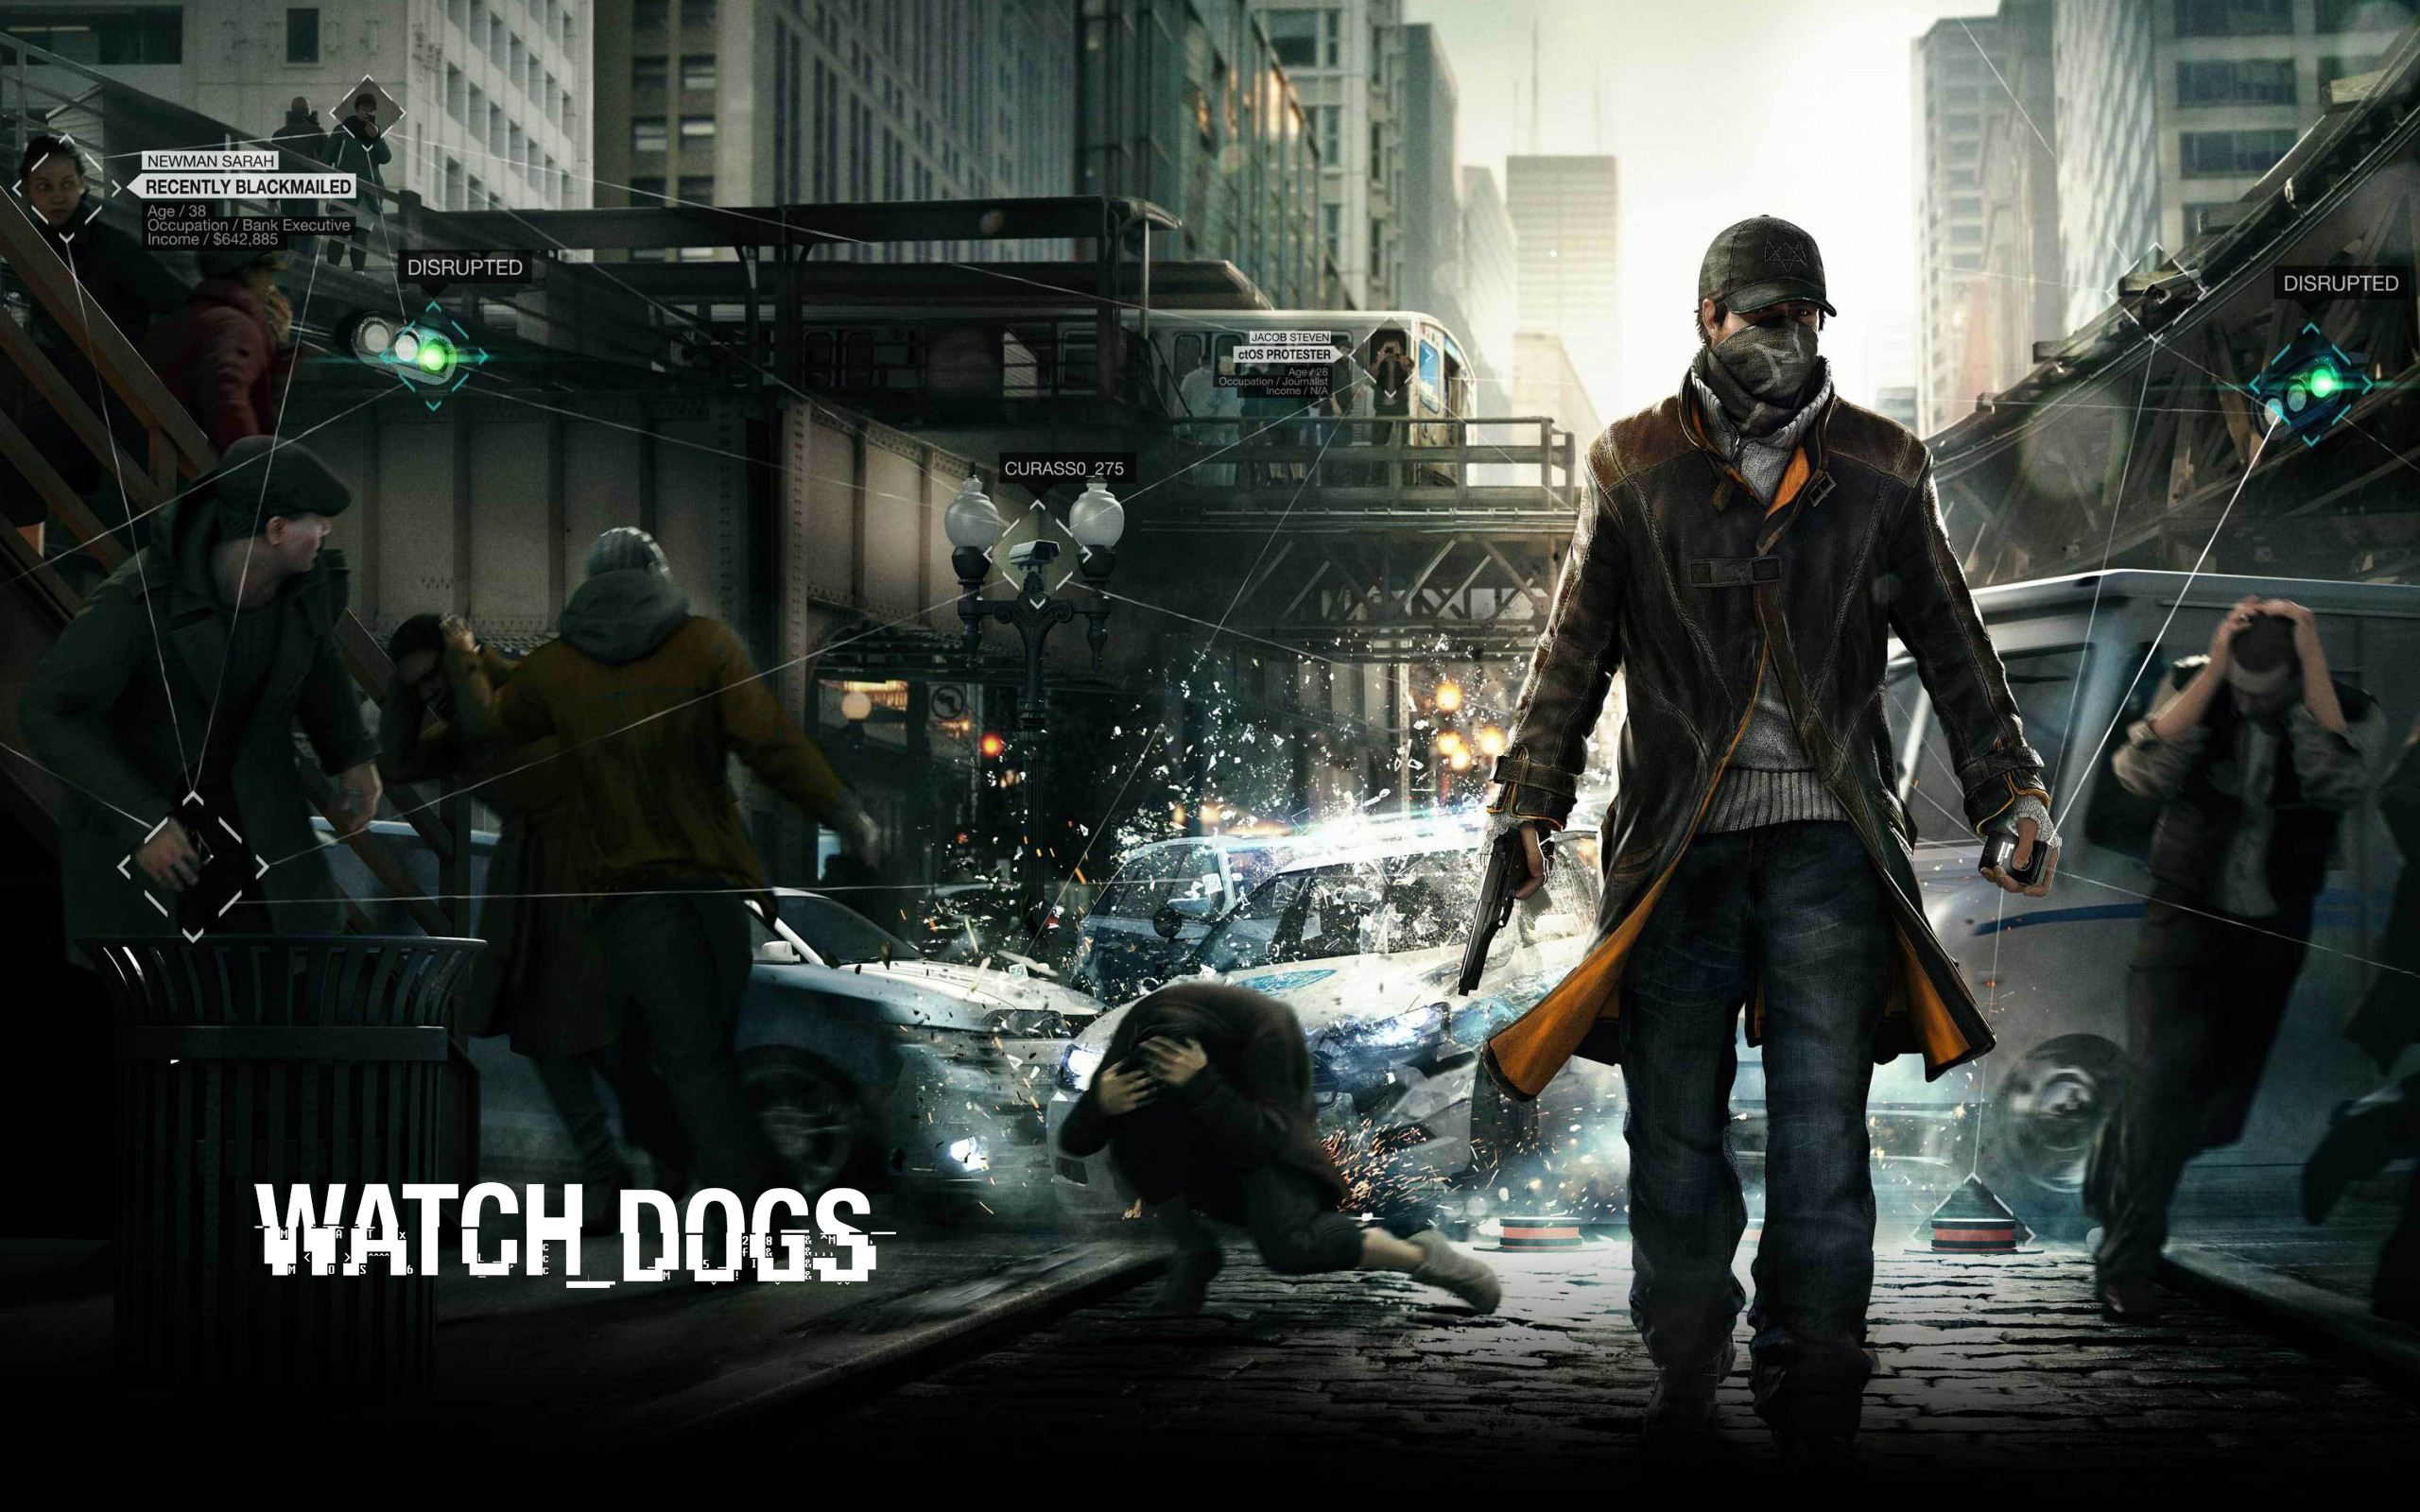 Watch Dogs 1132.02 Kb